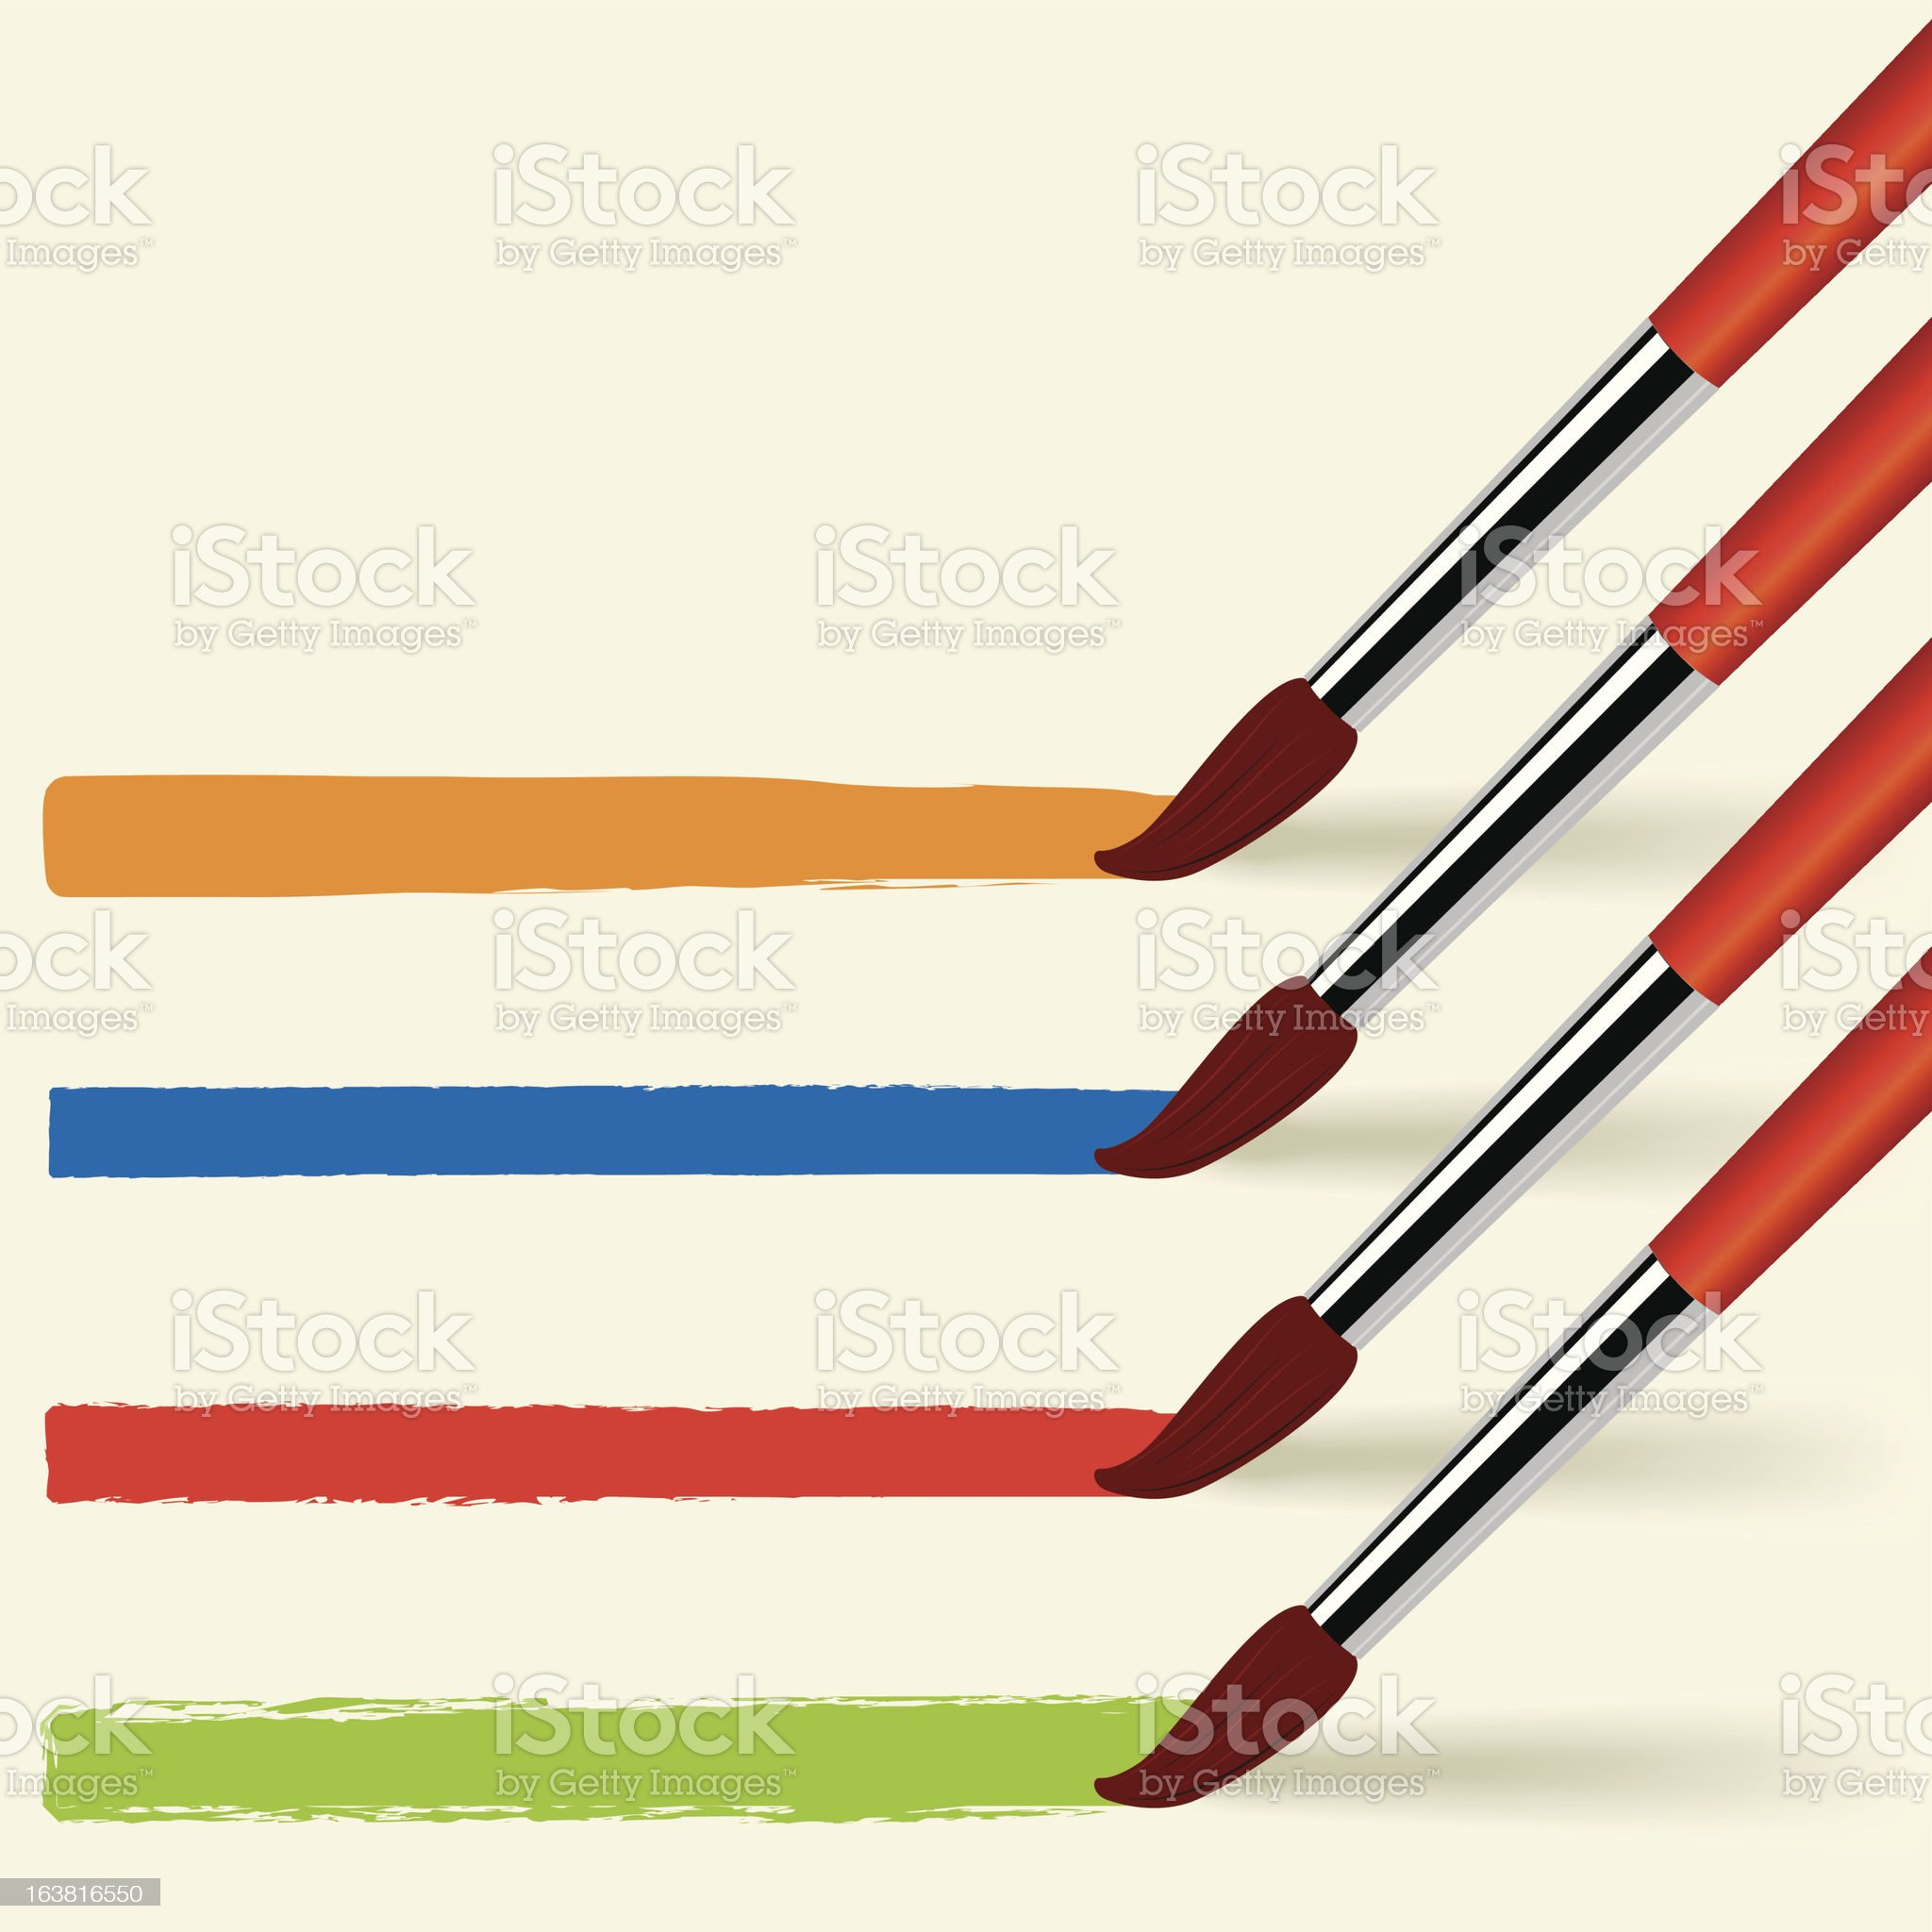 Paintbrushes (vector) royalty-free stock vector art